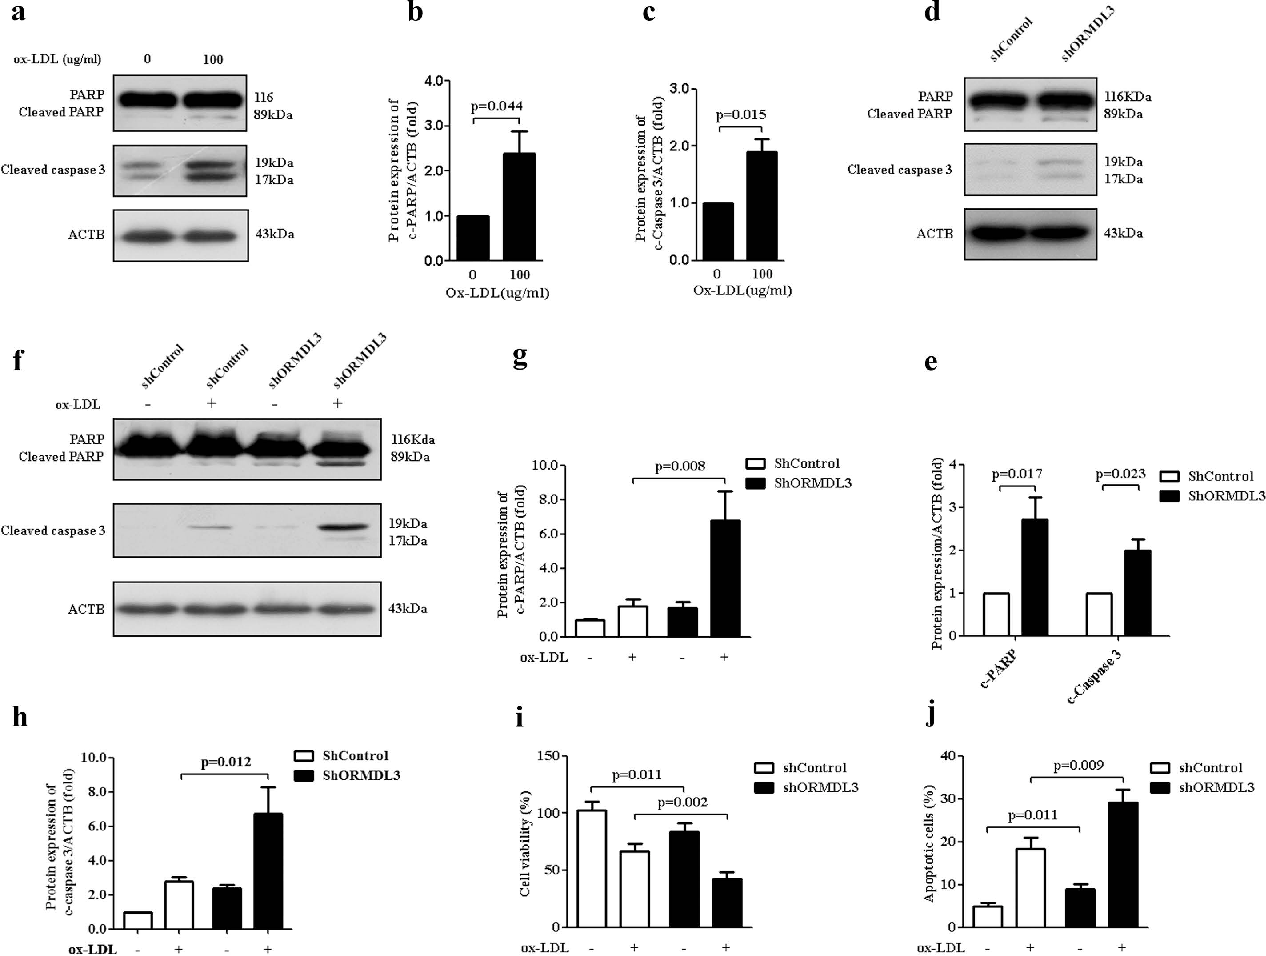 Figure 6. Knockdown of ORMDL3 promotes ox-LDL-induced apoptosis in endothelial cells. (a–c) Immunoblot detection of protein levels of cleaved PARP and caspase 3 in HUVECs treated with 100 μ g/ ml ox-LDL for 12 h. (d–e) At basal condition, in ShORMDL3 and shControl HUVECs, protein levels of